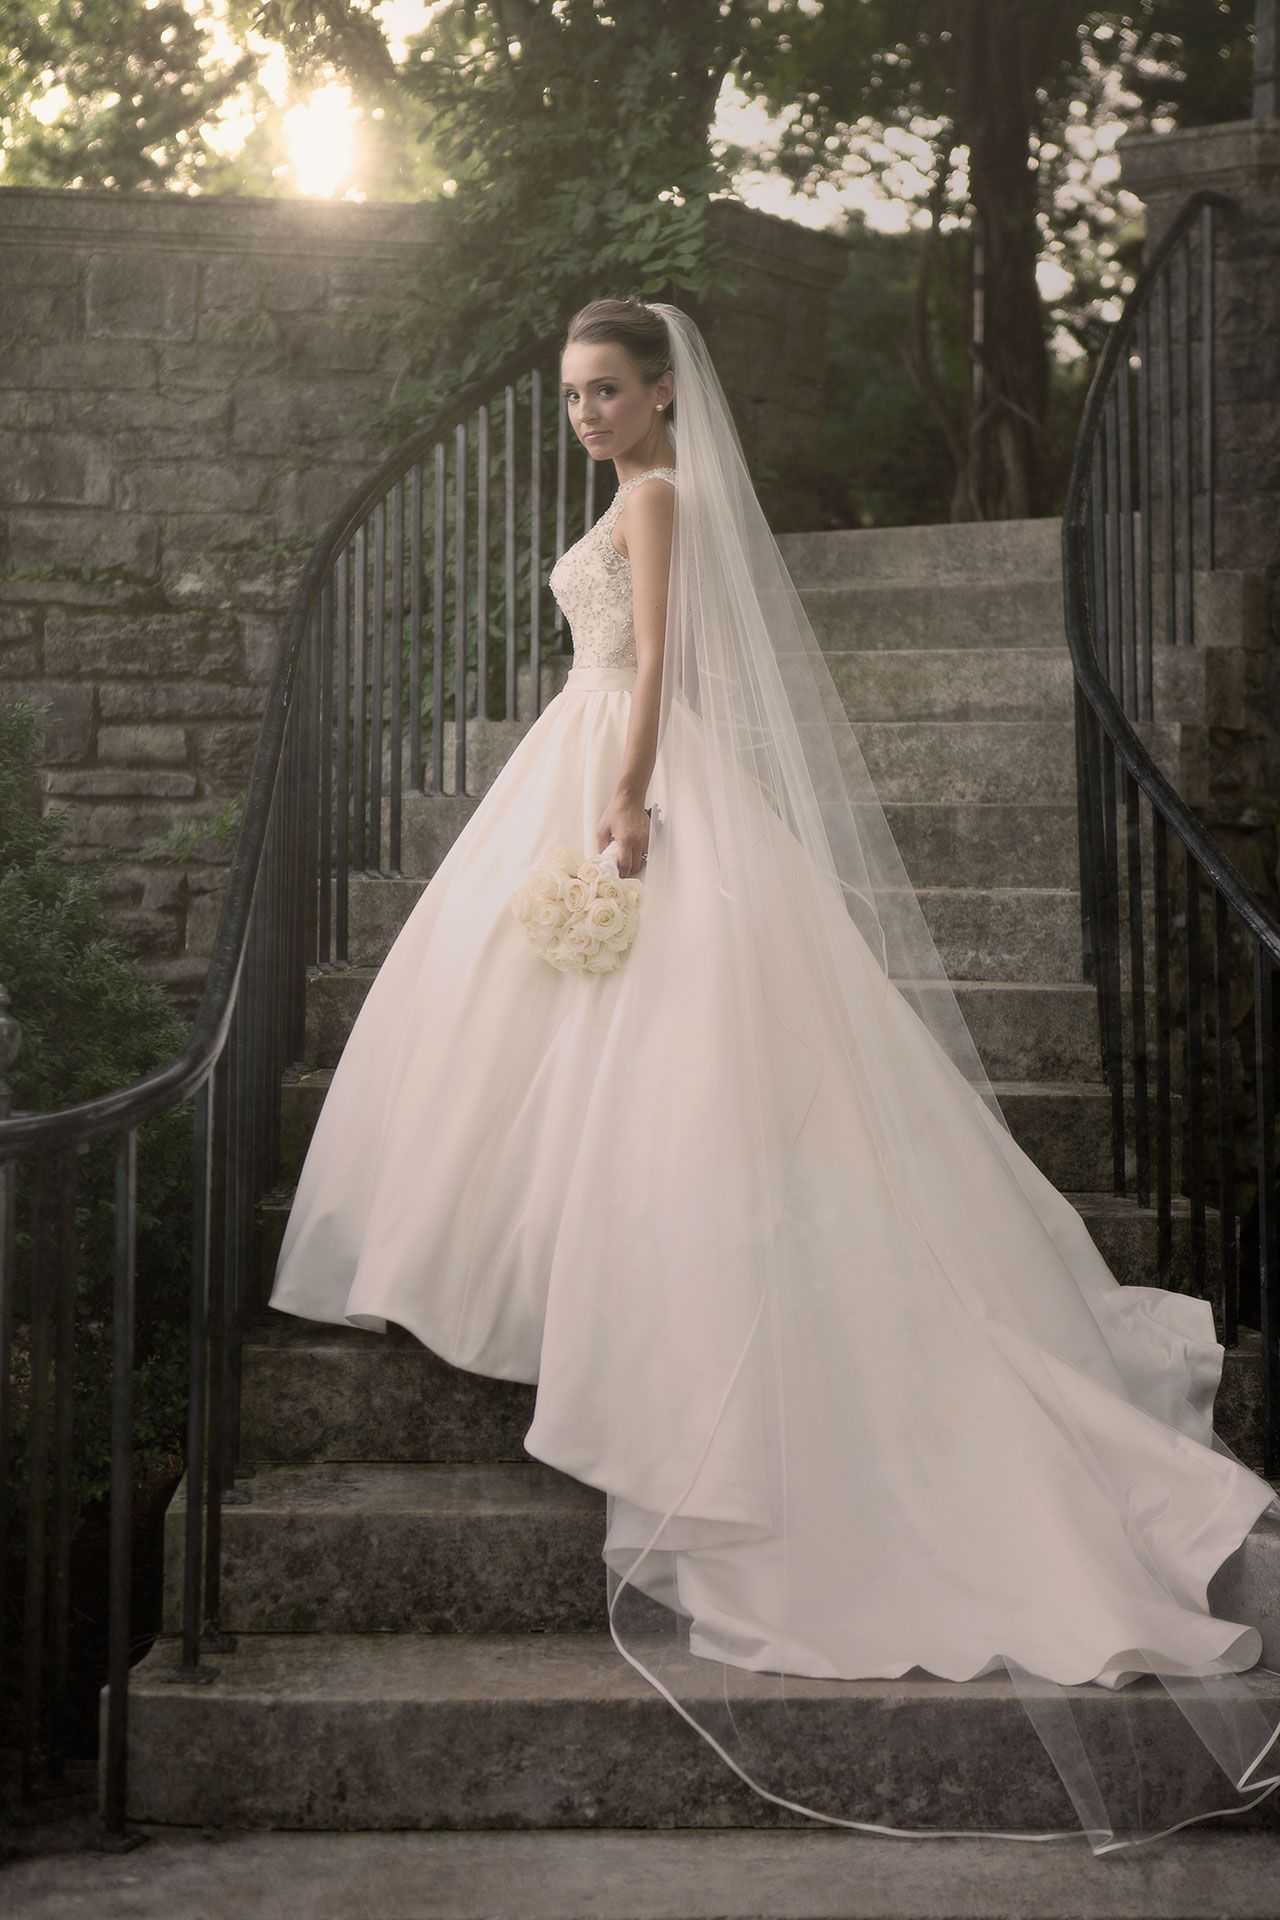 Cheekwood Mansion And Gardens For Wedding Photos Classic Vintage